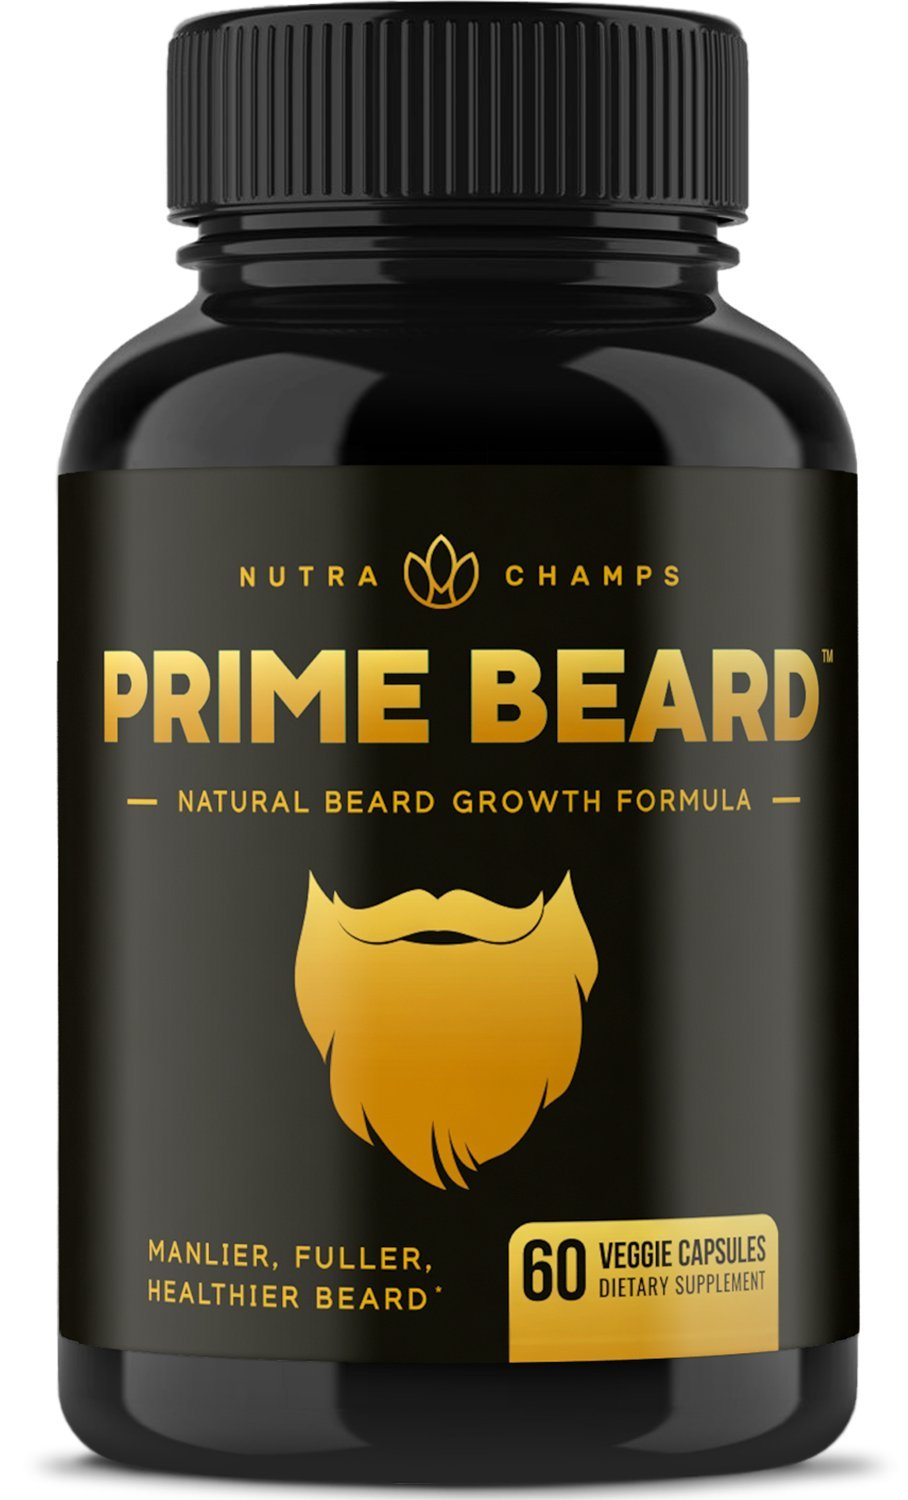 Prime Beard Beard Growth Vitamins Supplement for Men - Thicker, Fuller, Manlier Hair -